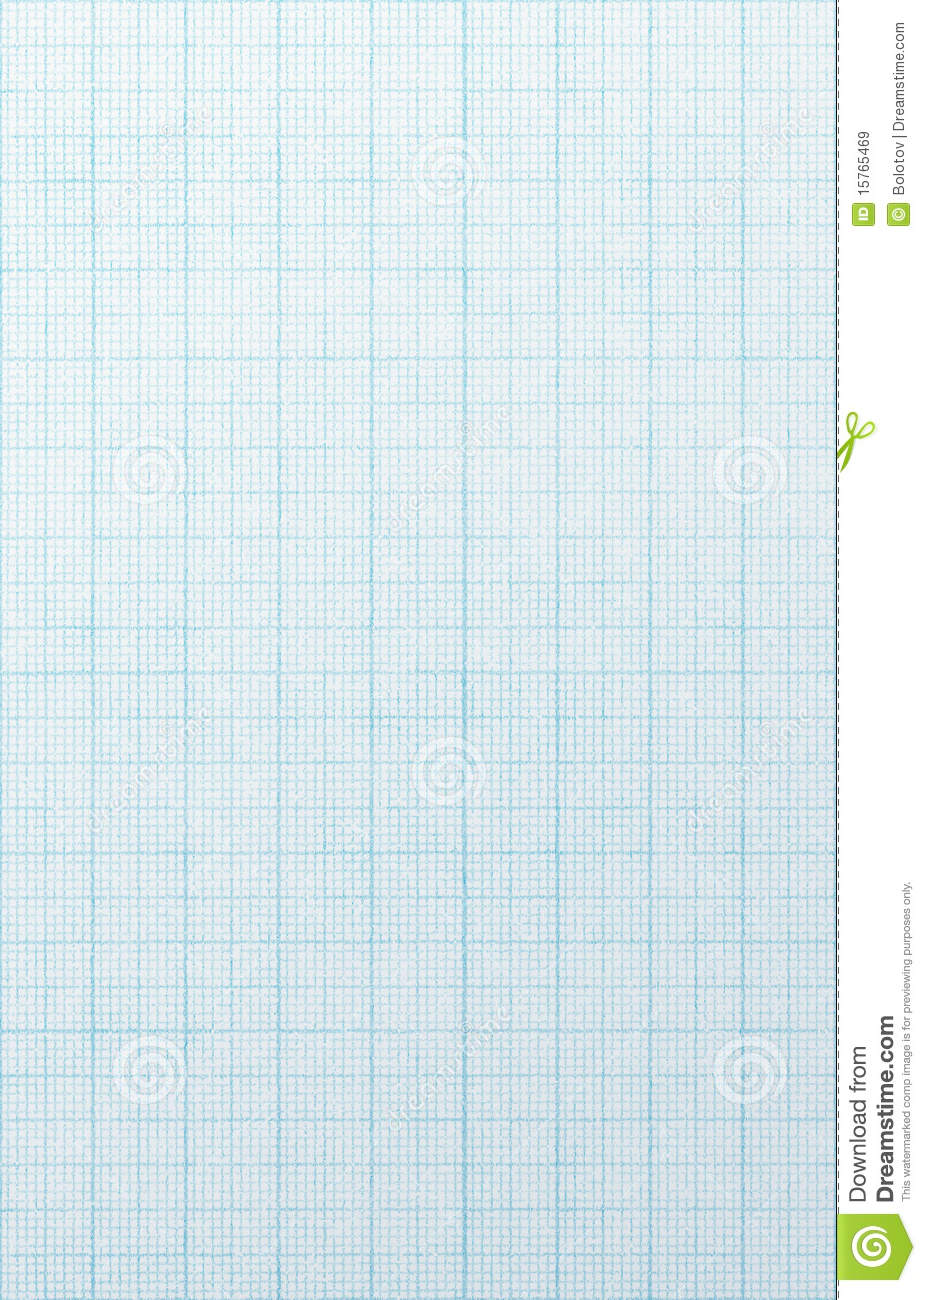 blue grid scale paper  stock image  image of aged  retro